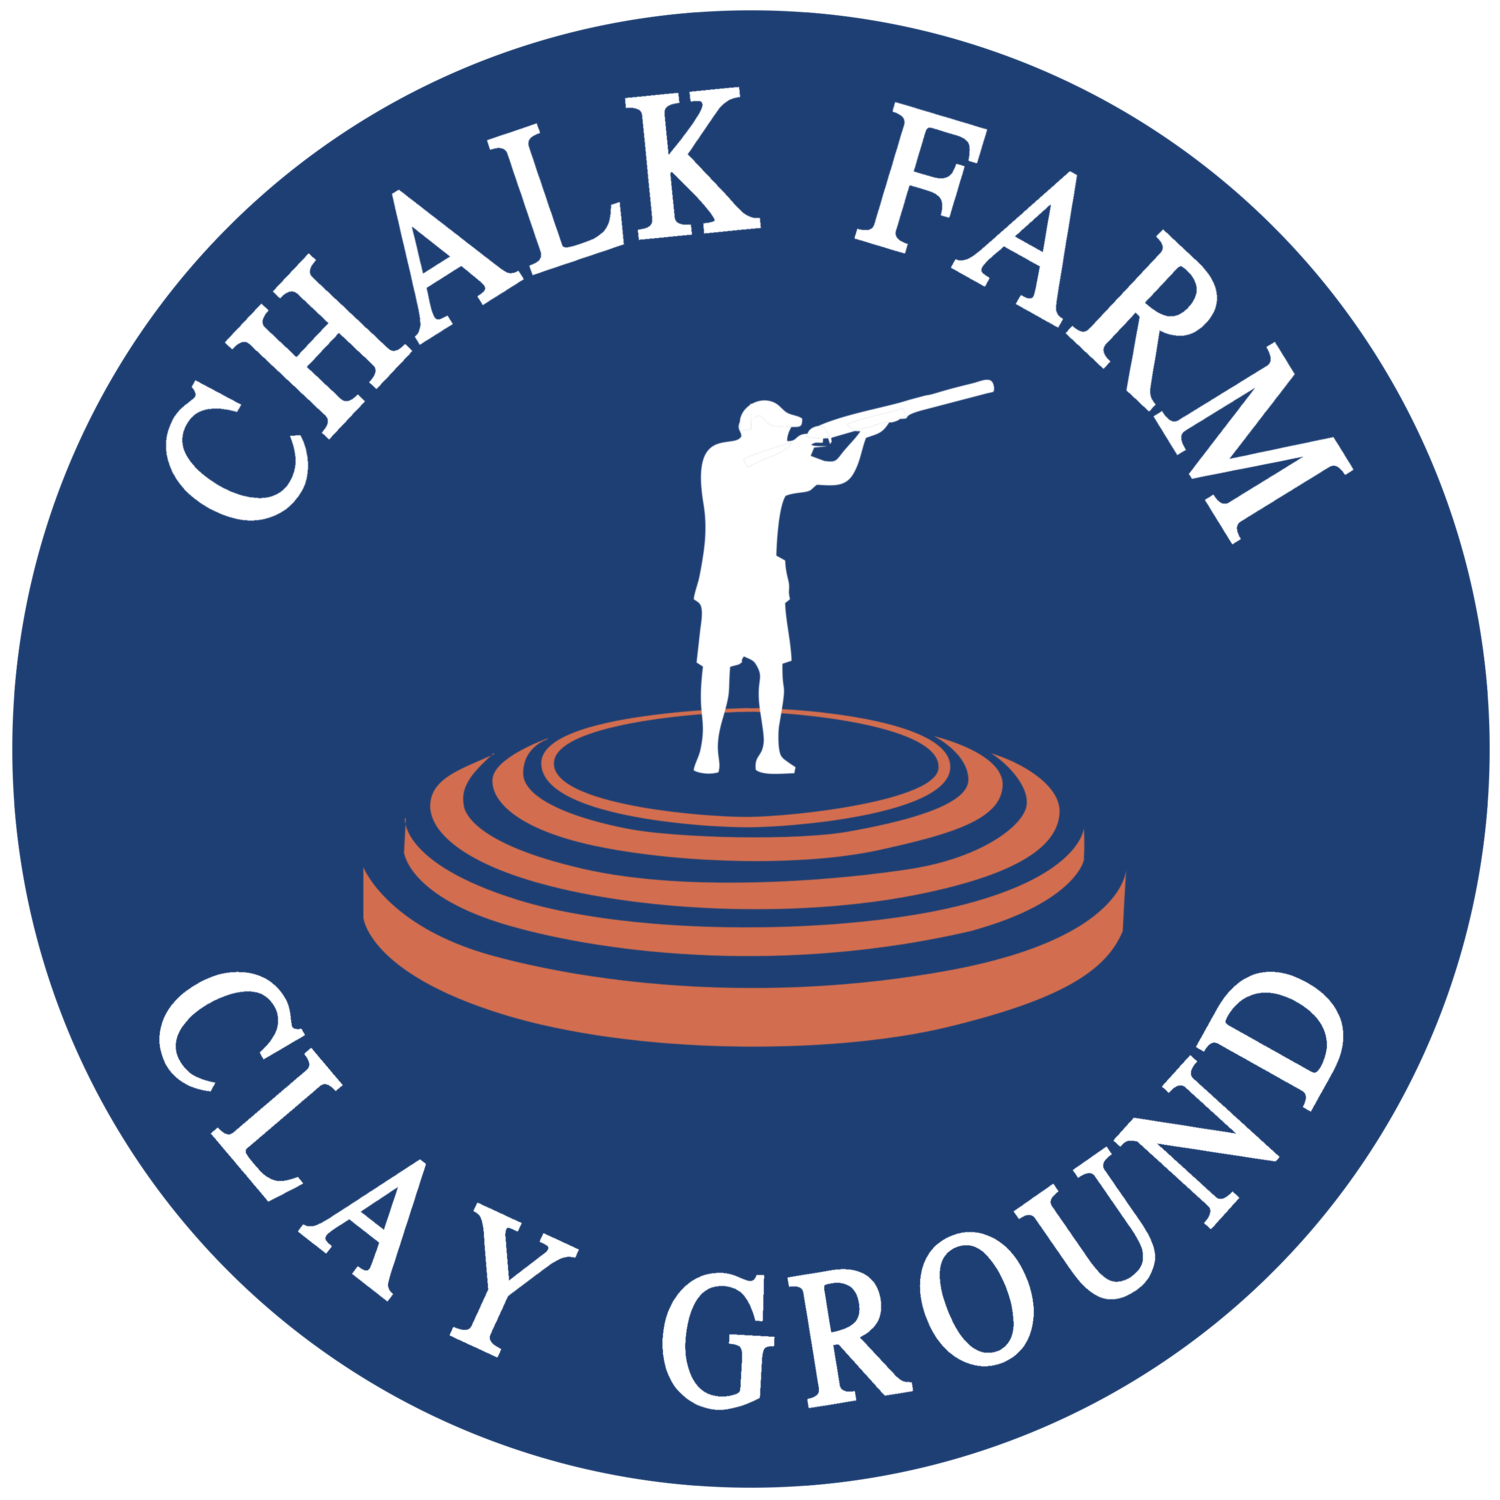 Chalk Farm Clay Ground